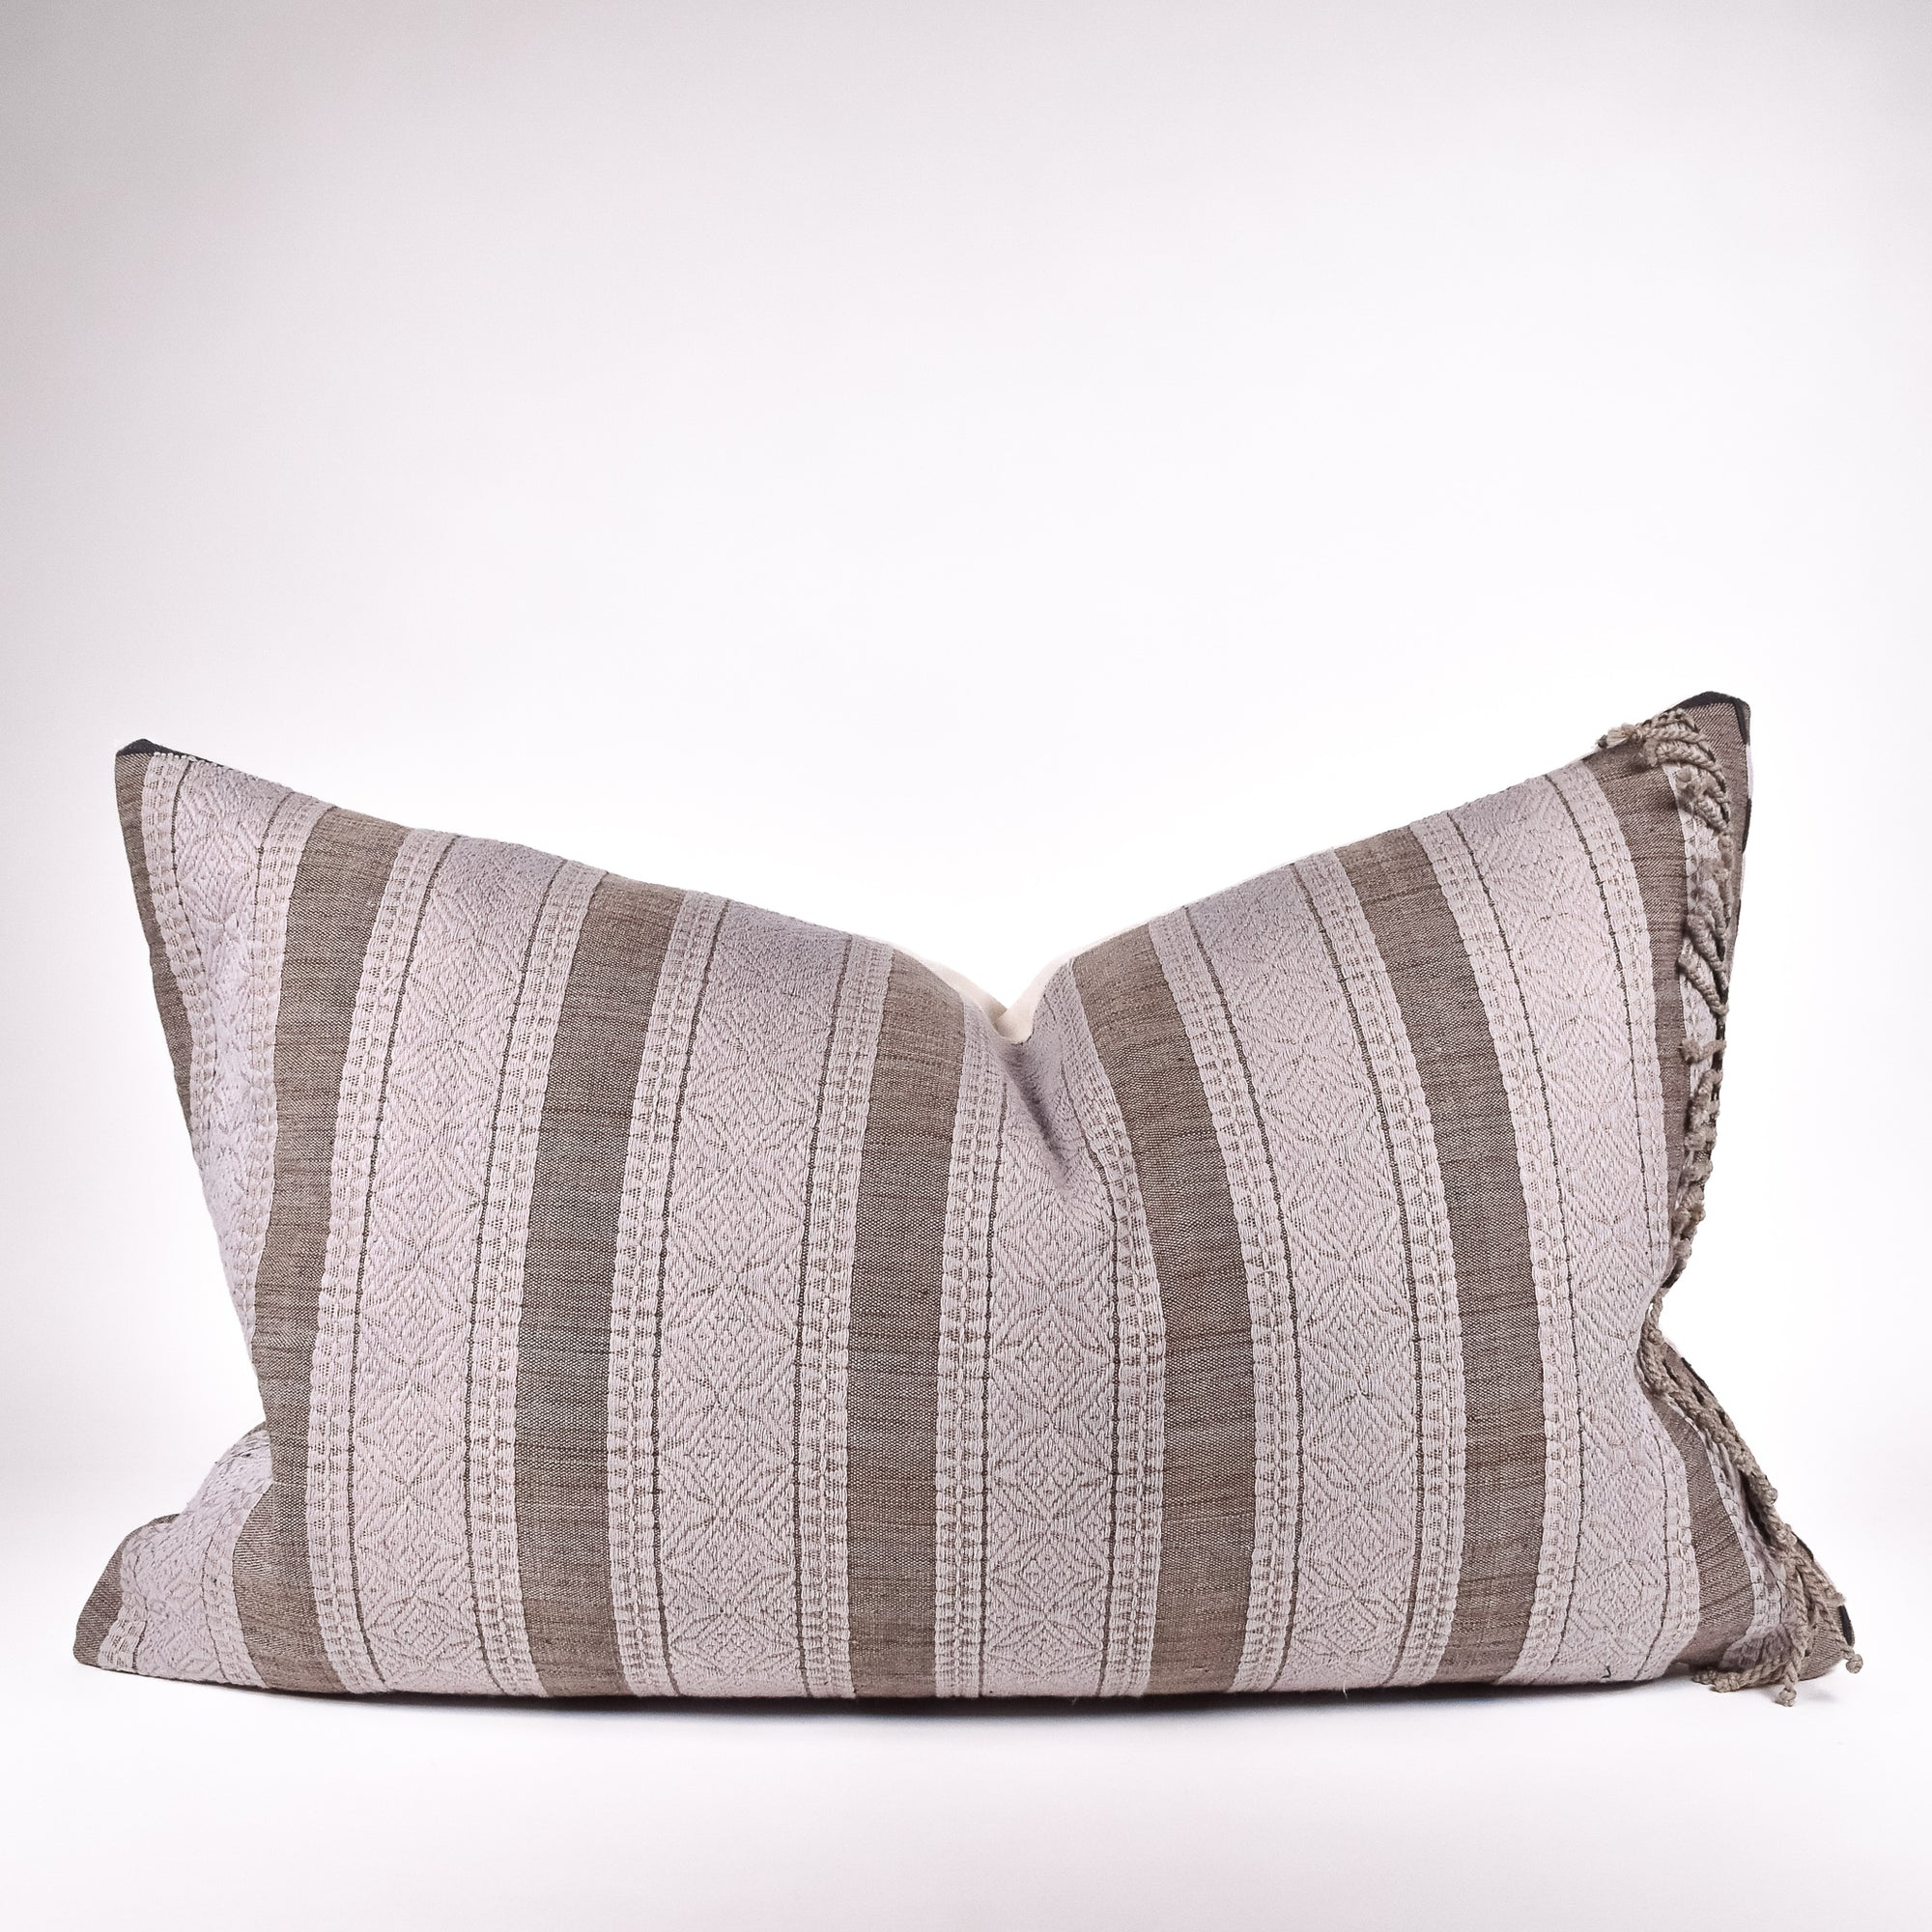 Naga Chin Tribal Pillow - Rug & Weave